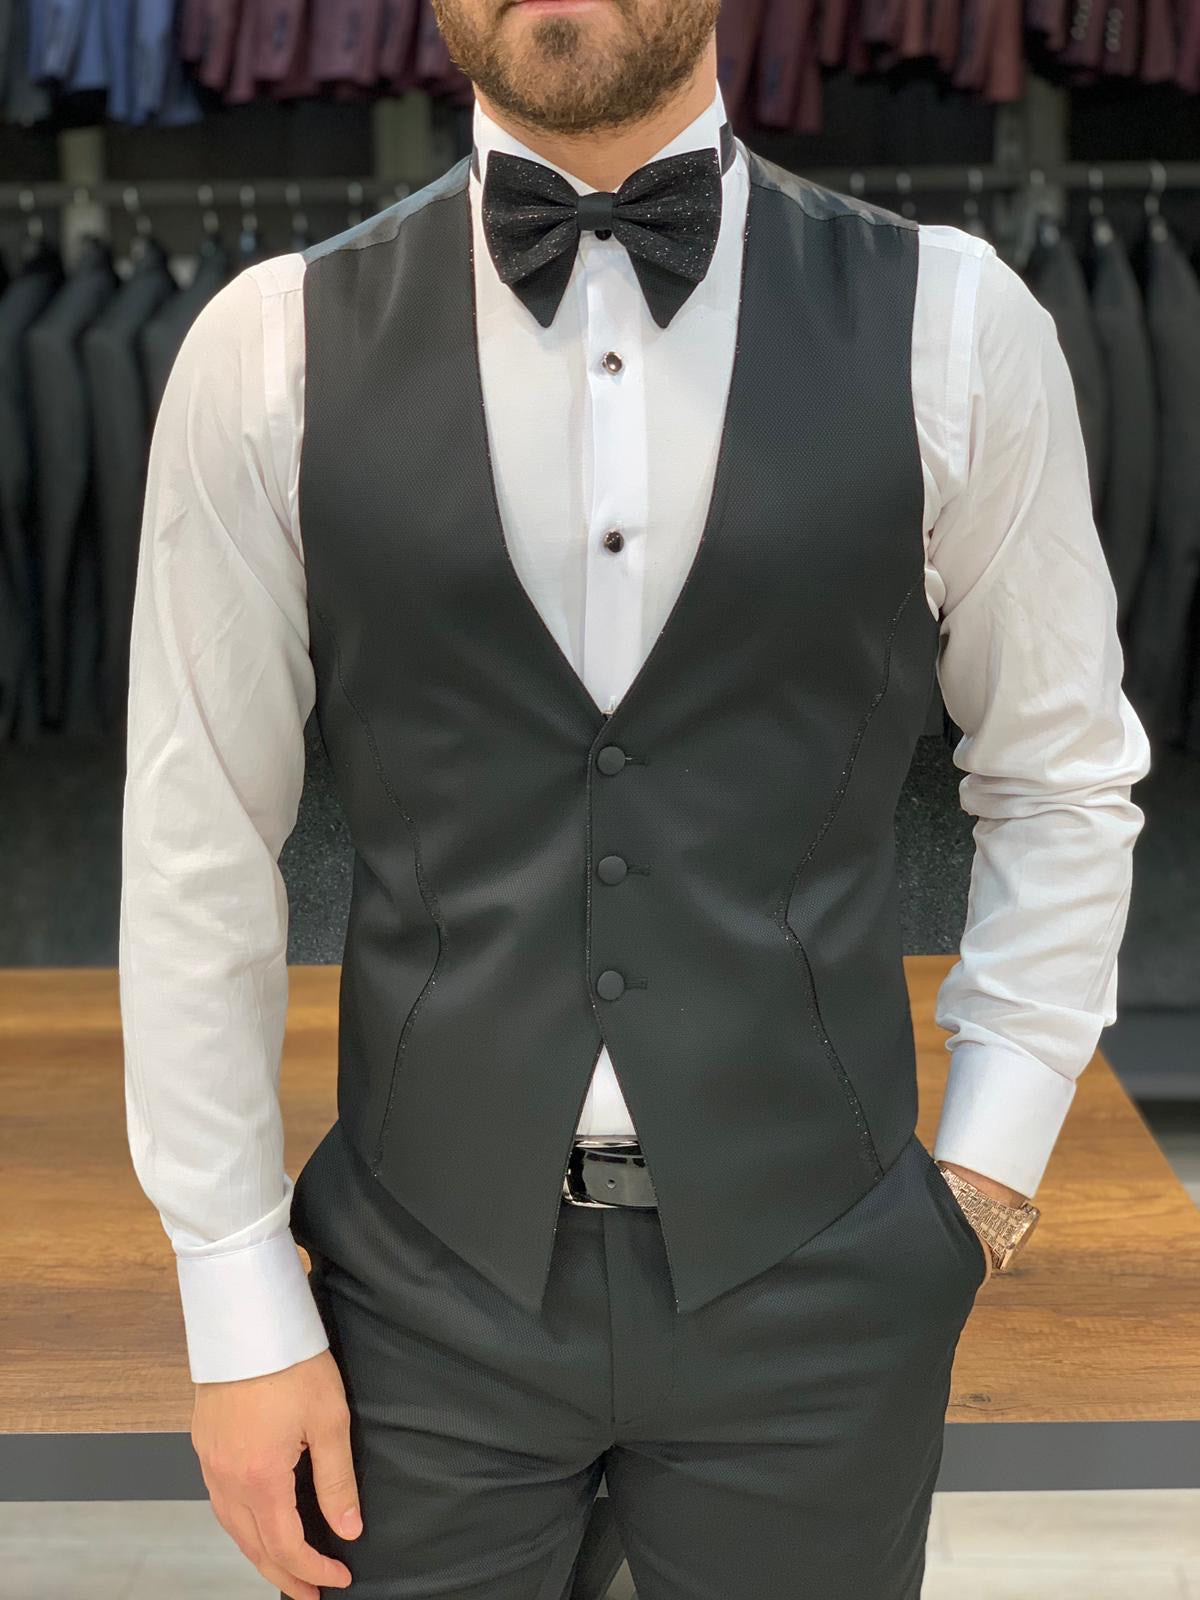 Catani Black Slim Fit Tuxedo #6